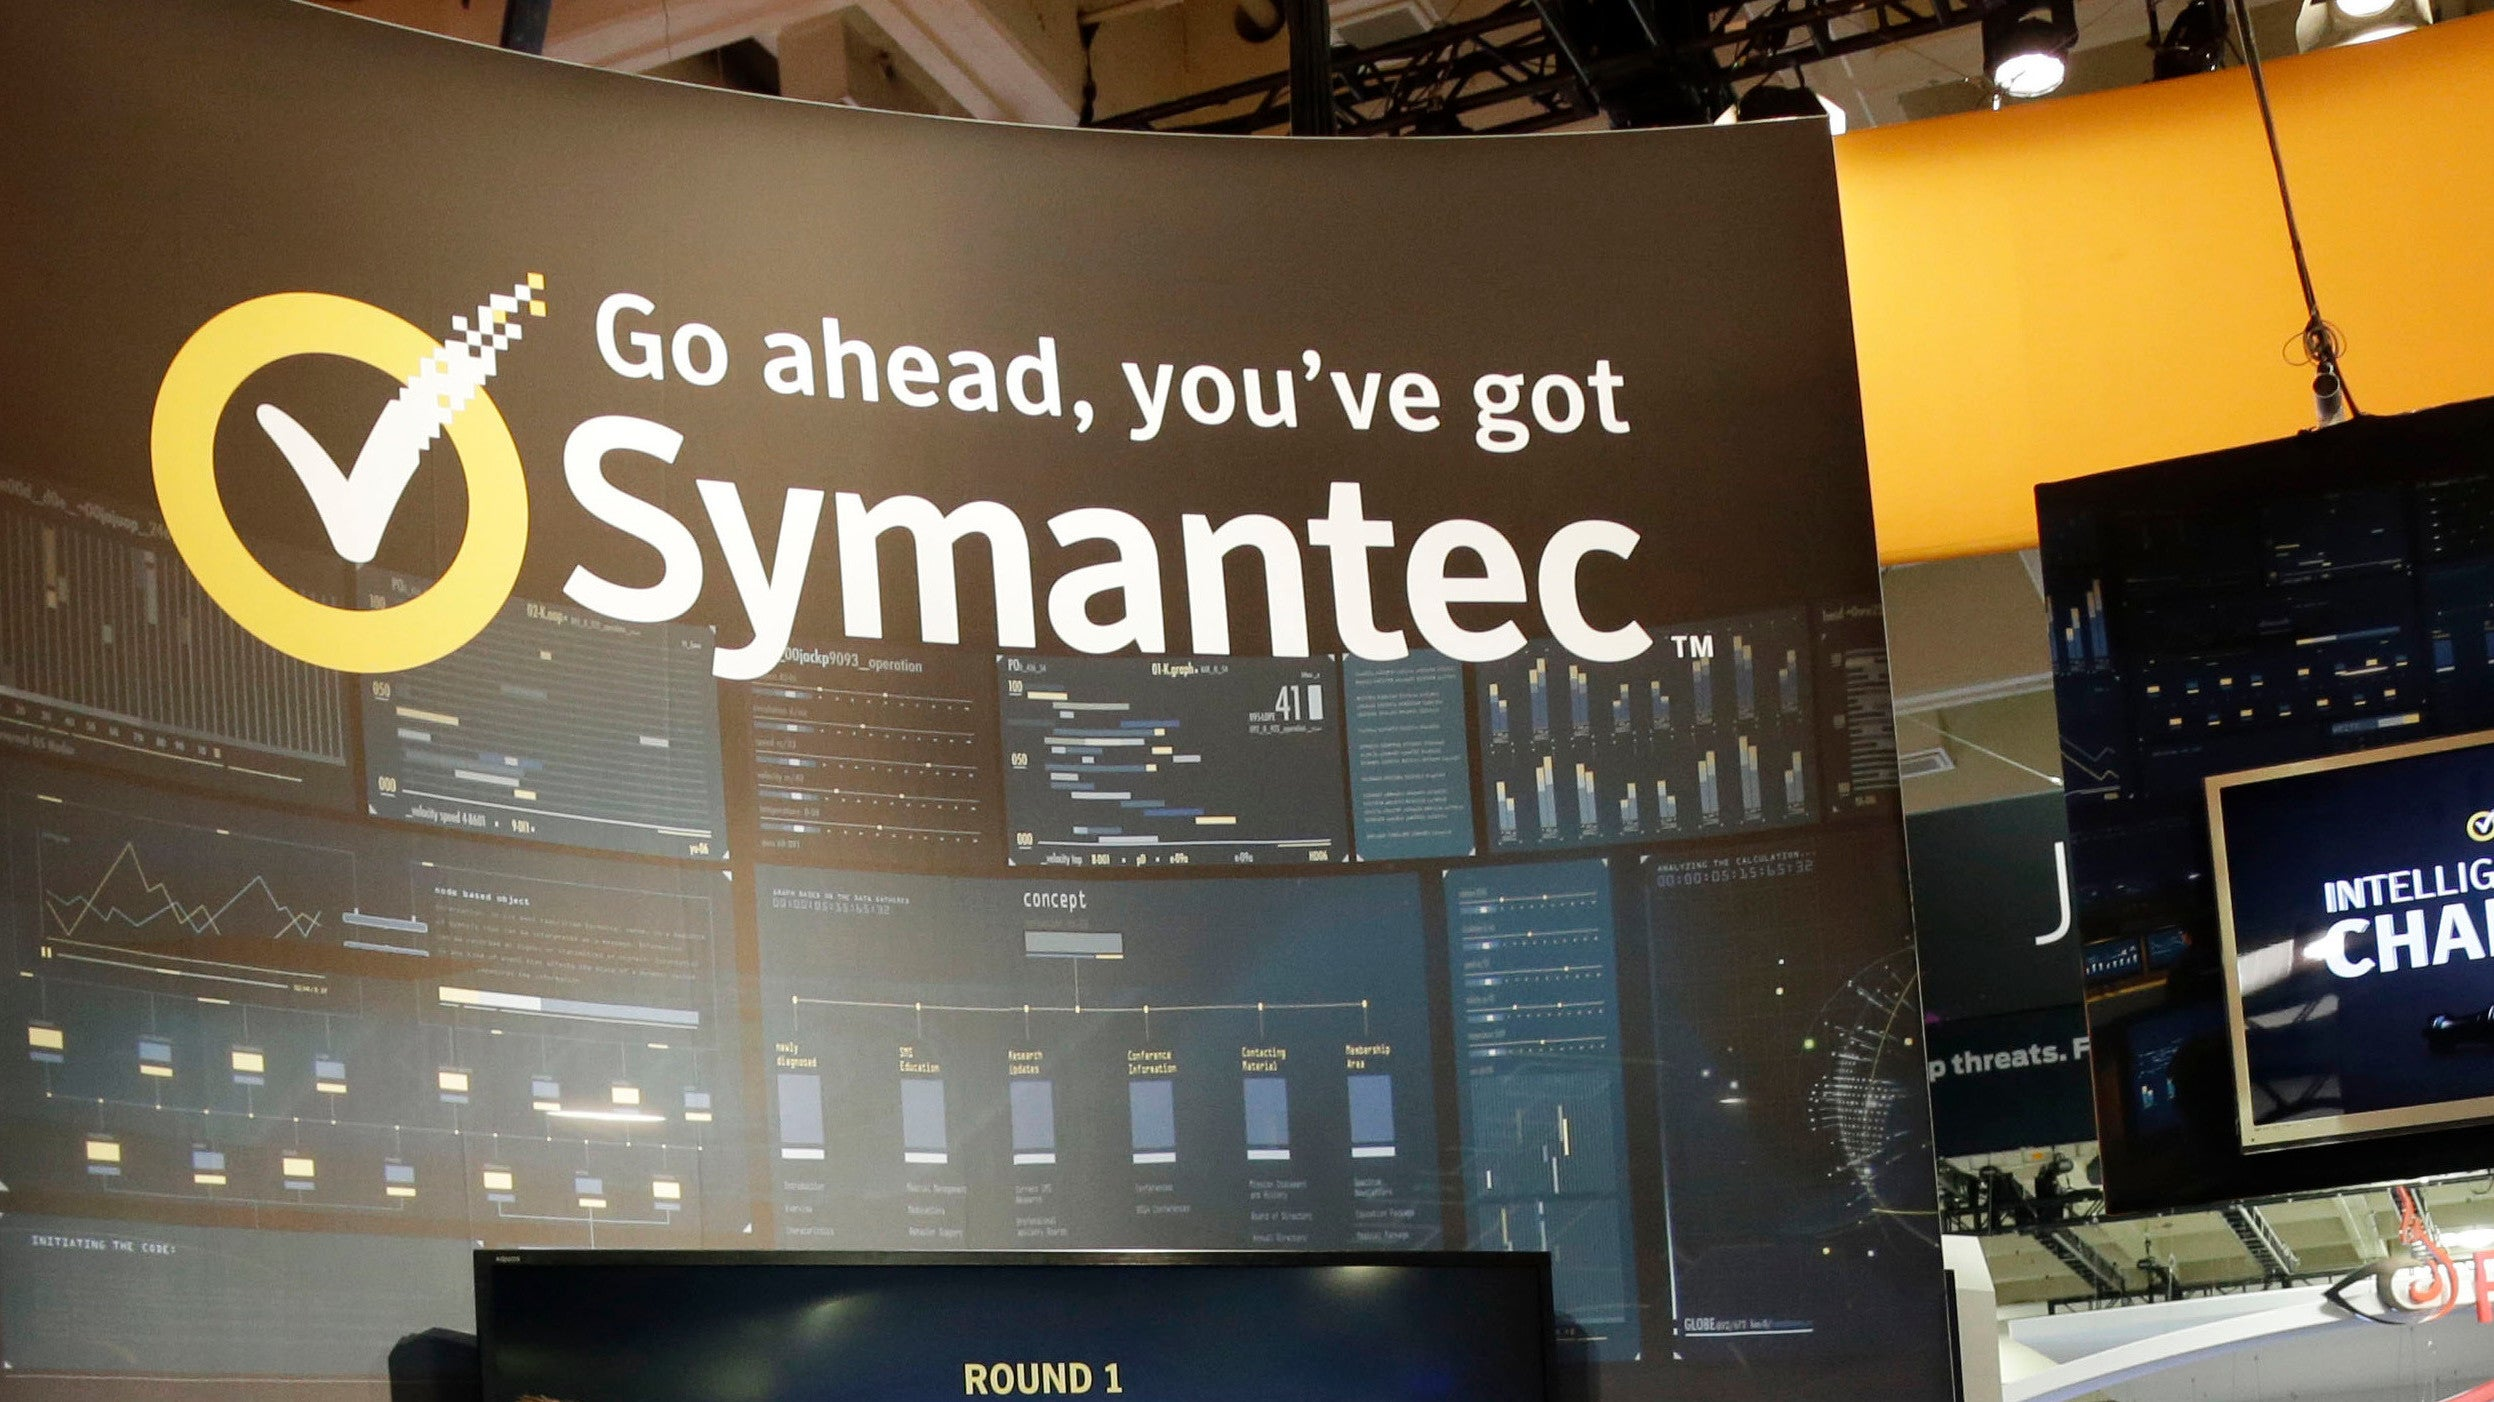 Symantec Data Stolen By Hacker Was Fake, Company Says